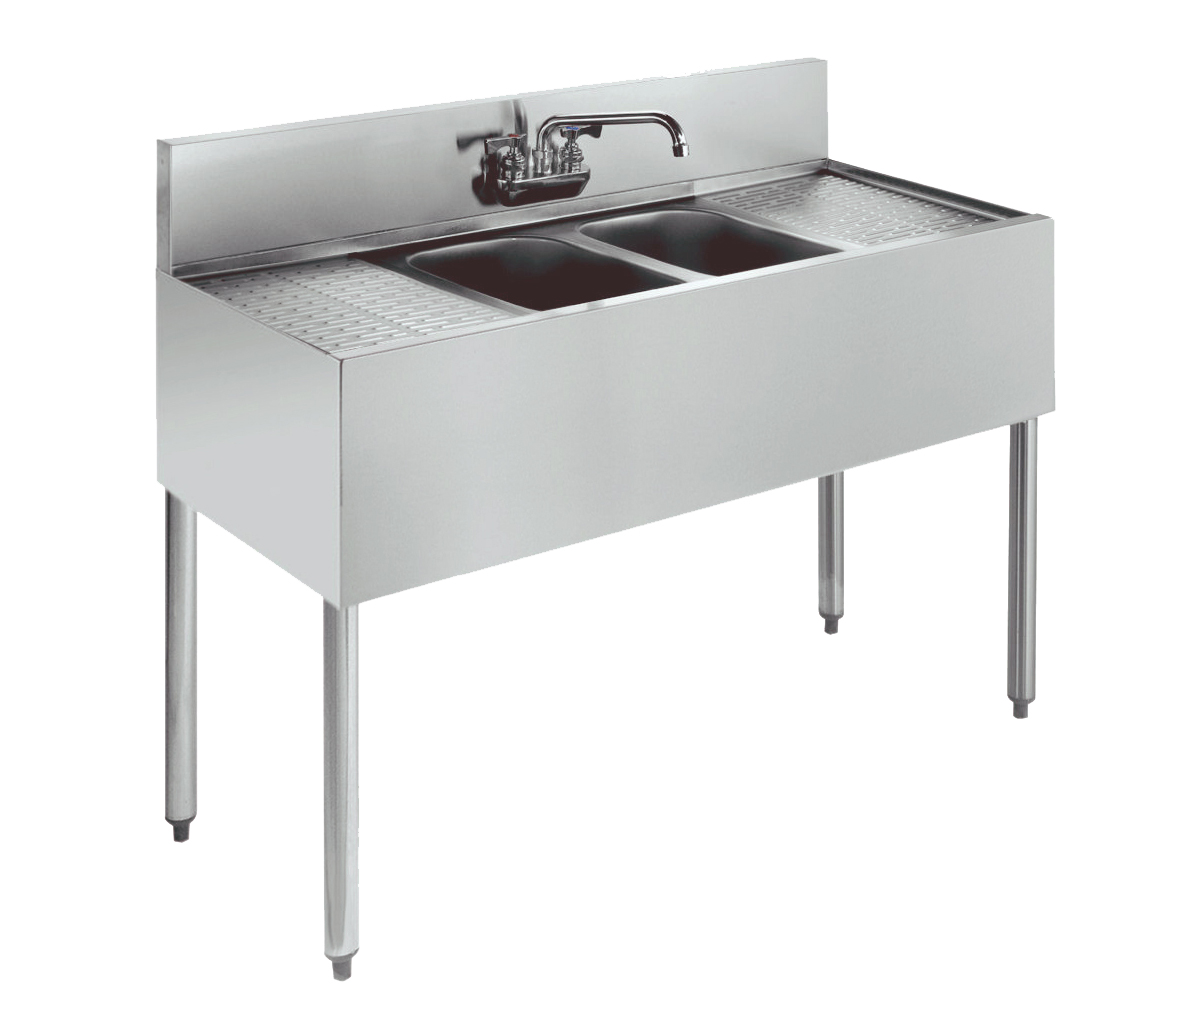 Krowne Metal KR21-42C underbar sink units